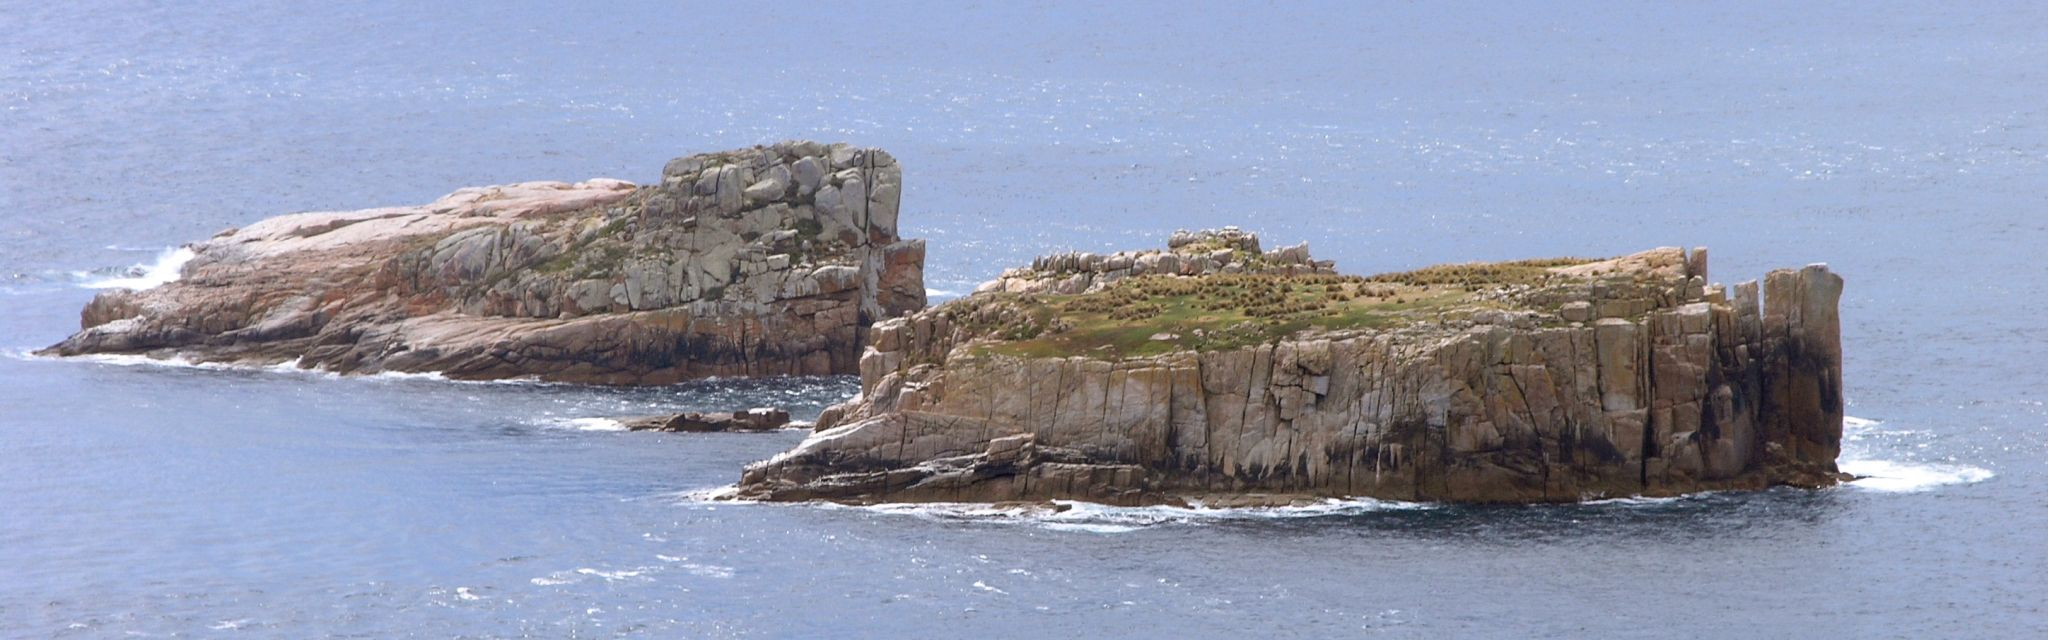 Granite islands off Freycinet Coast, image from a Nature Bound Australia Tasmania National Parks tour